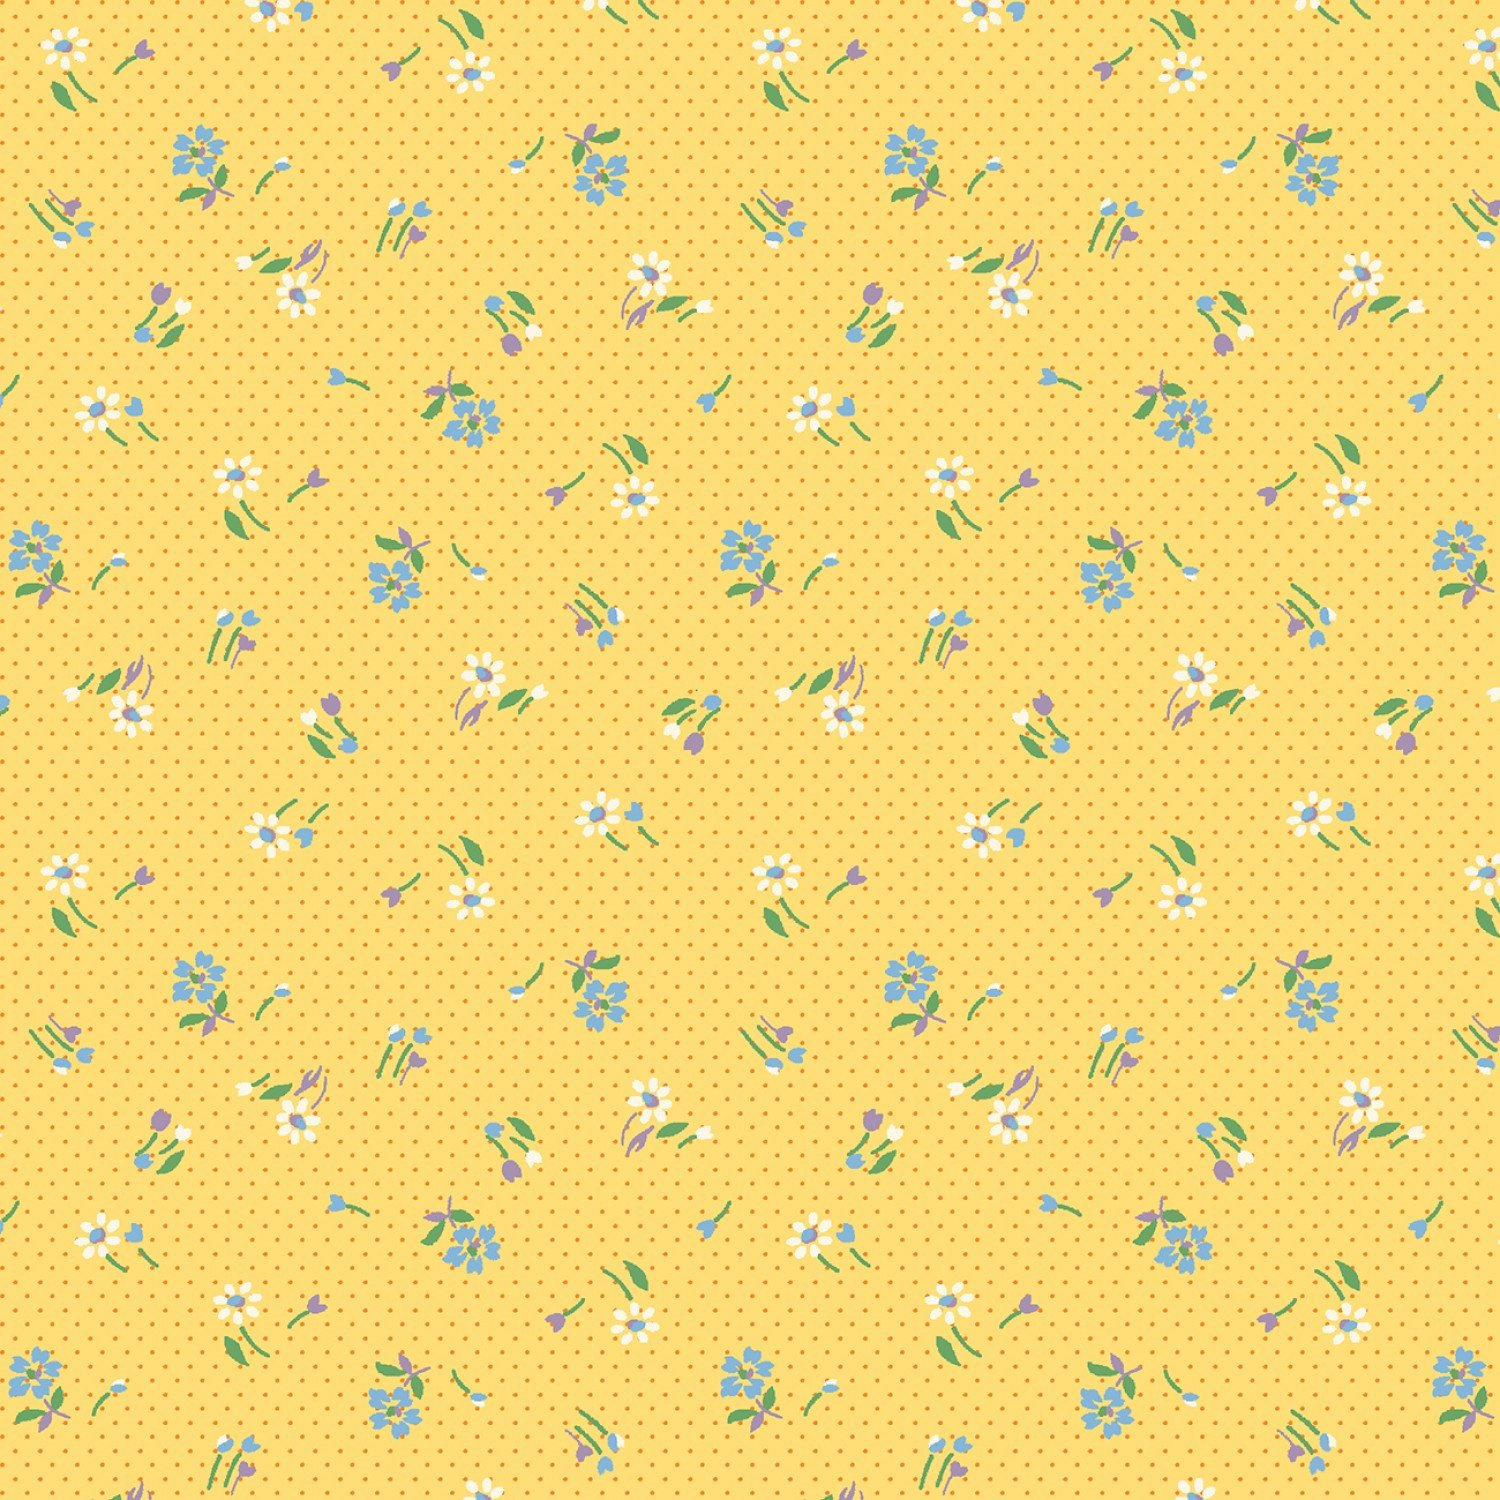 MF-Aunt Grace's Apron (1930's Reproduction) 0759-0133 Yellow - Mini Meadow